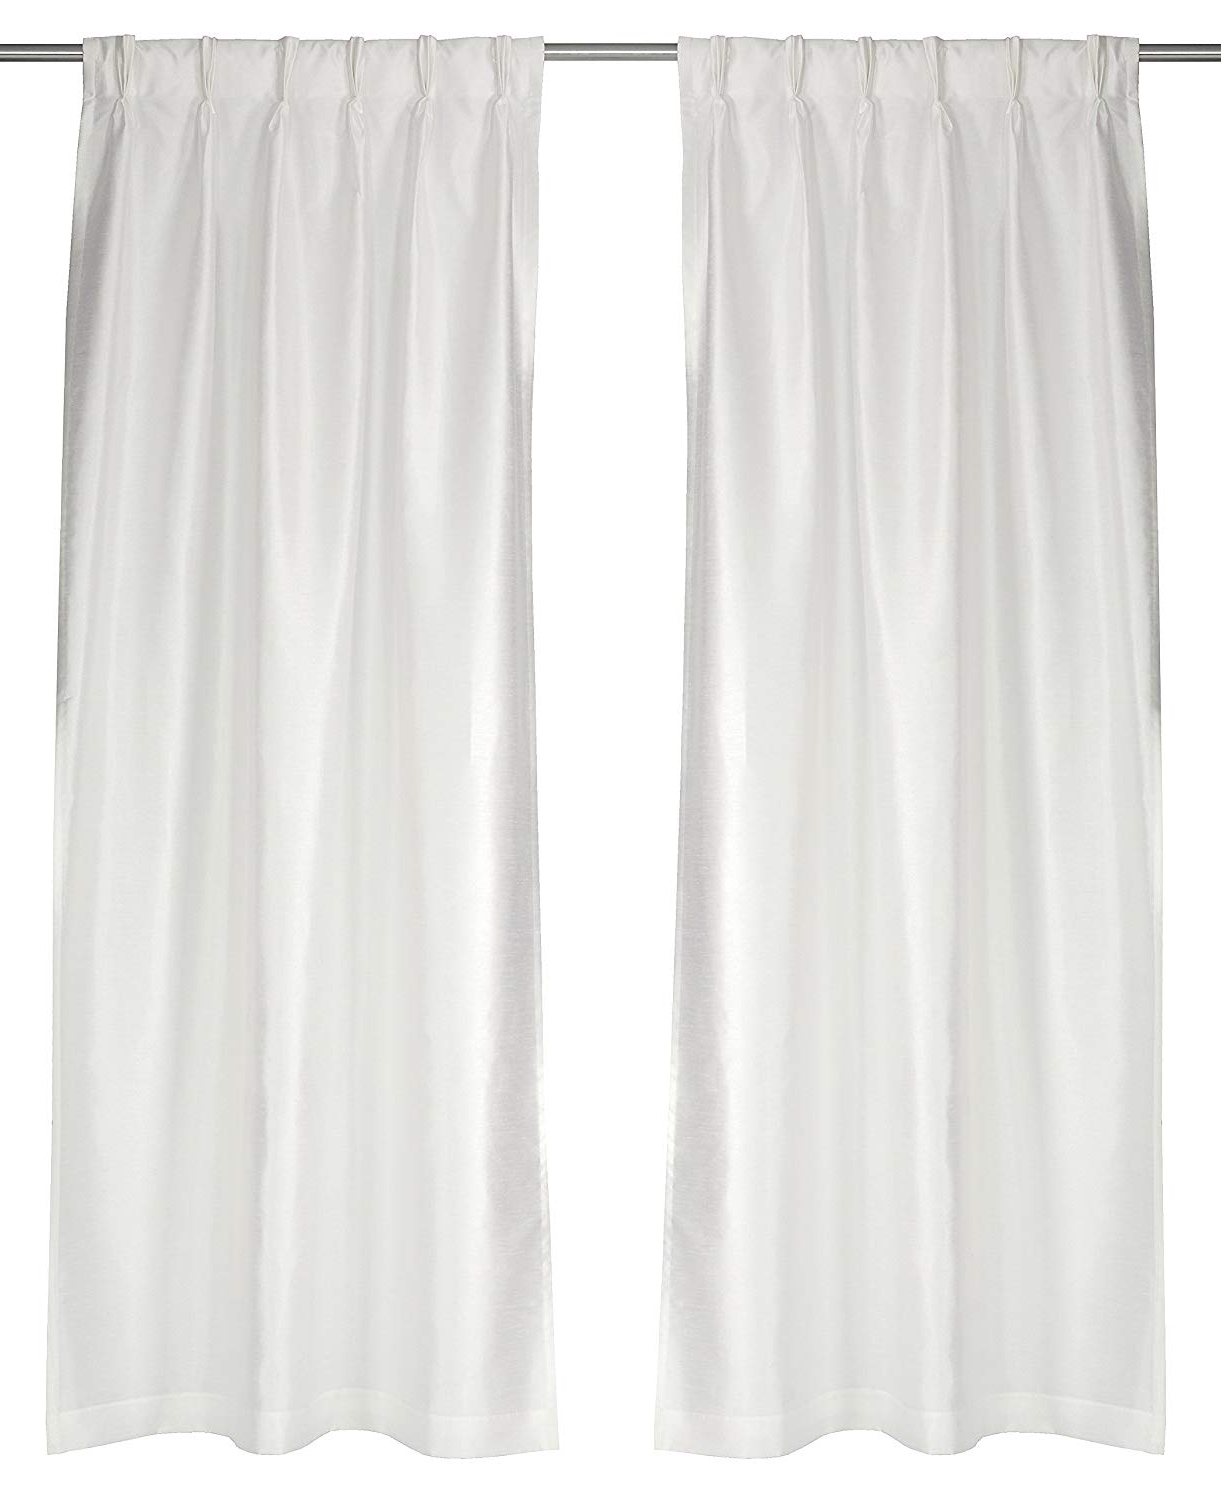 Amazon: Lj Home Fashions 572 Zoi Lined Faux Silk Pinch In Most Up To Date Double Pinch Pleat Top Curtain Panel Pairs (View 3 of 20)